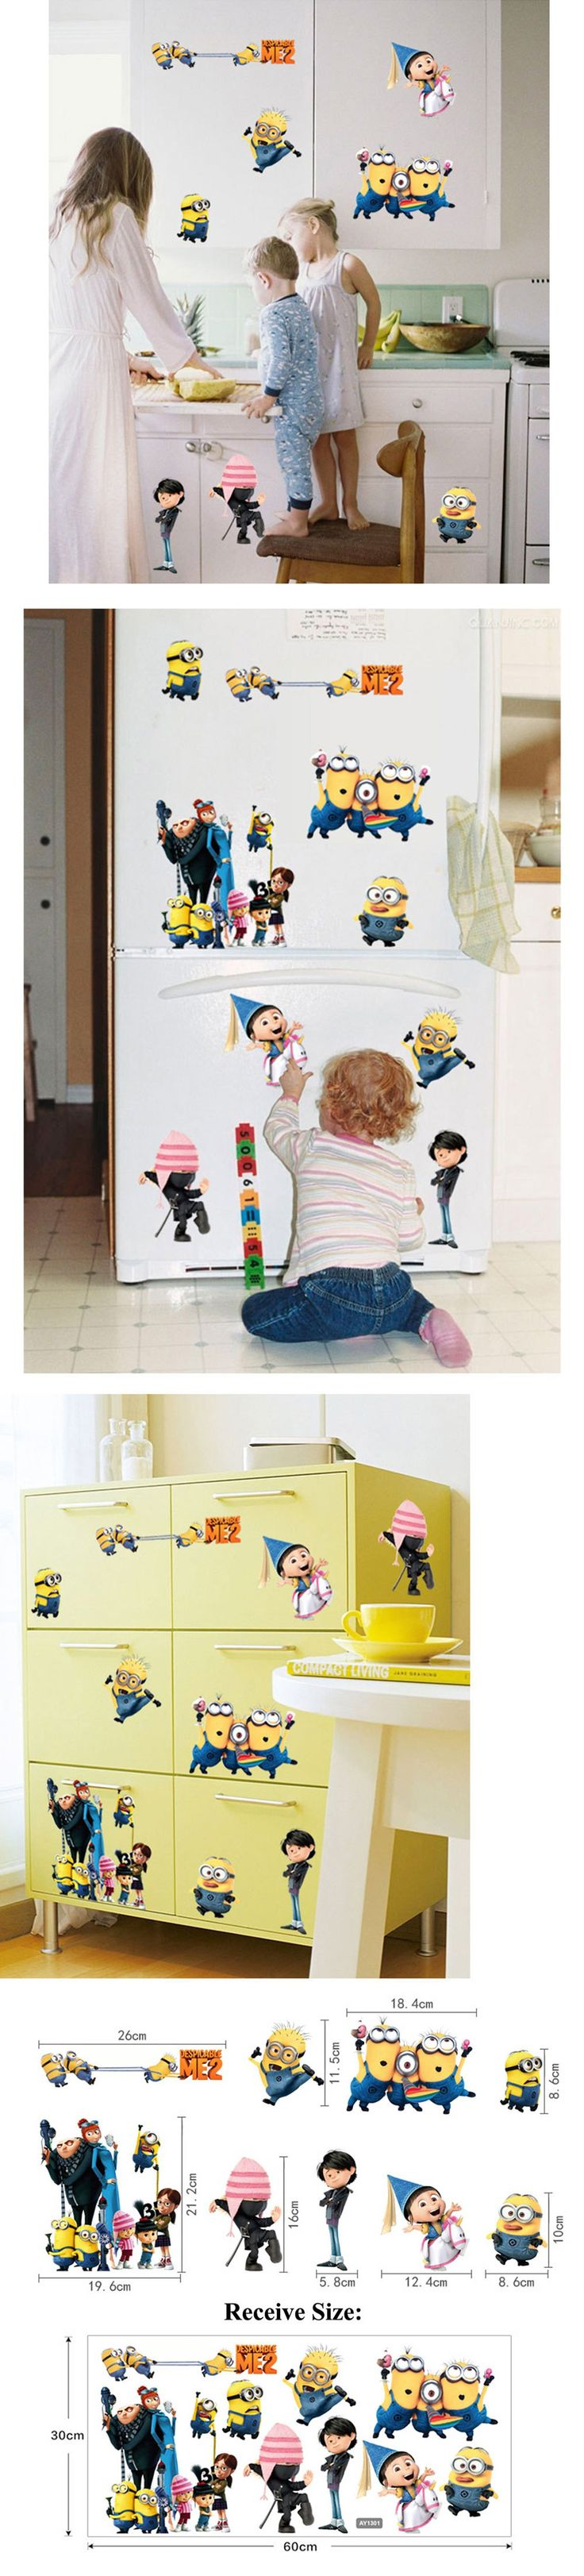 25 unique despicable me bedroom ideas on pinterest minions despicable me 2 cute cartoon wall stickers home decor removable vinyl art decals for kids minions amipublicfo Images